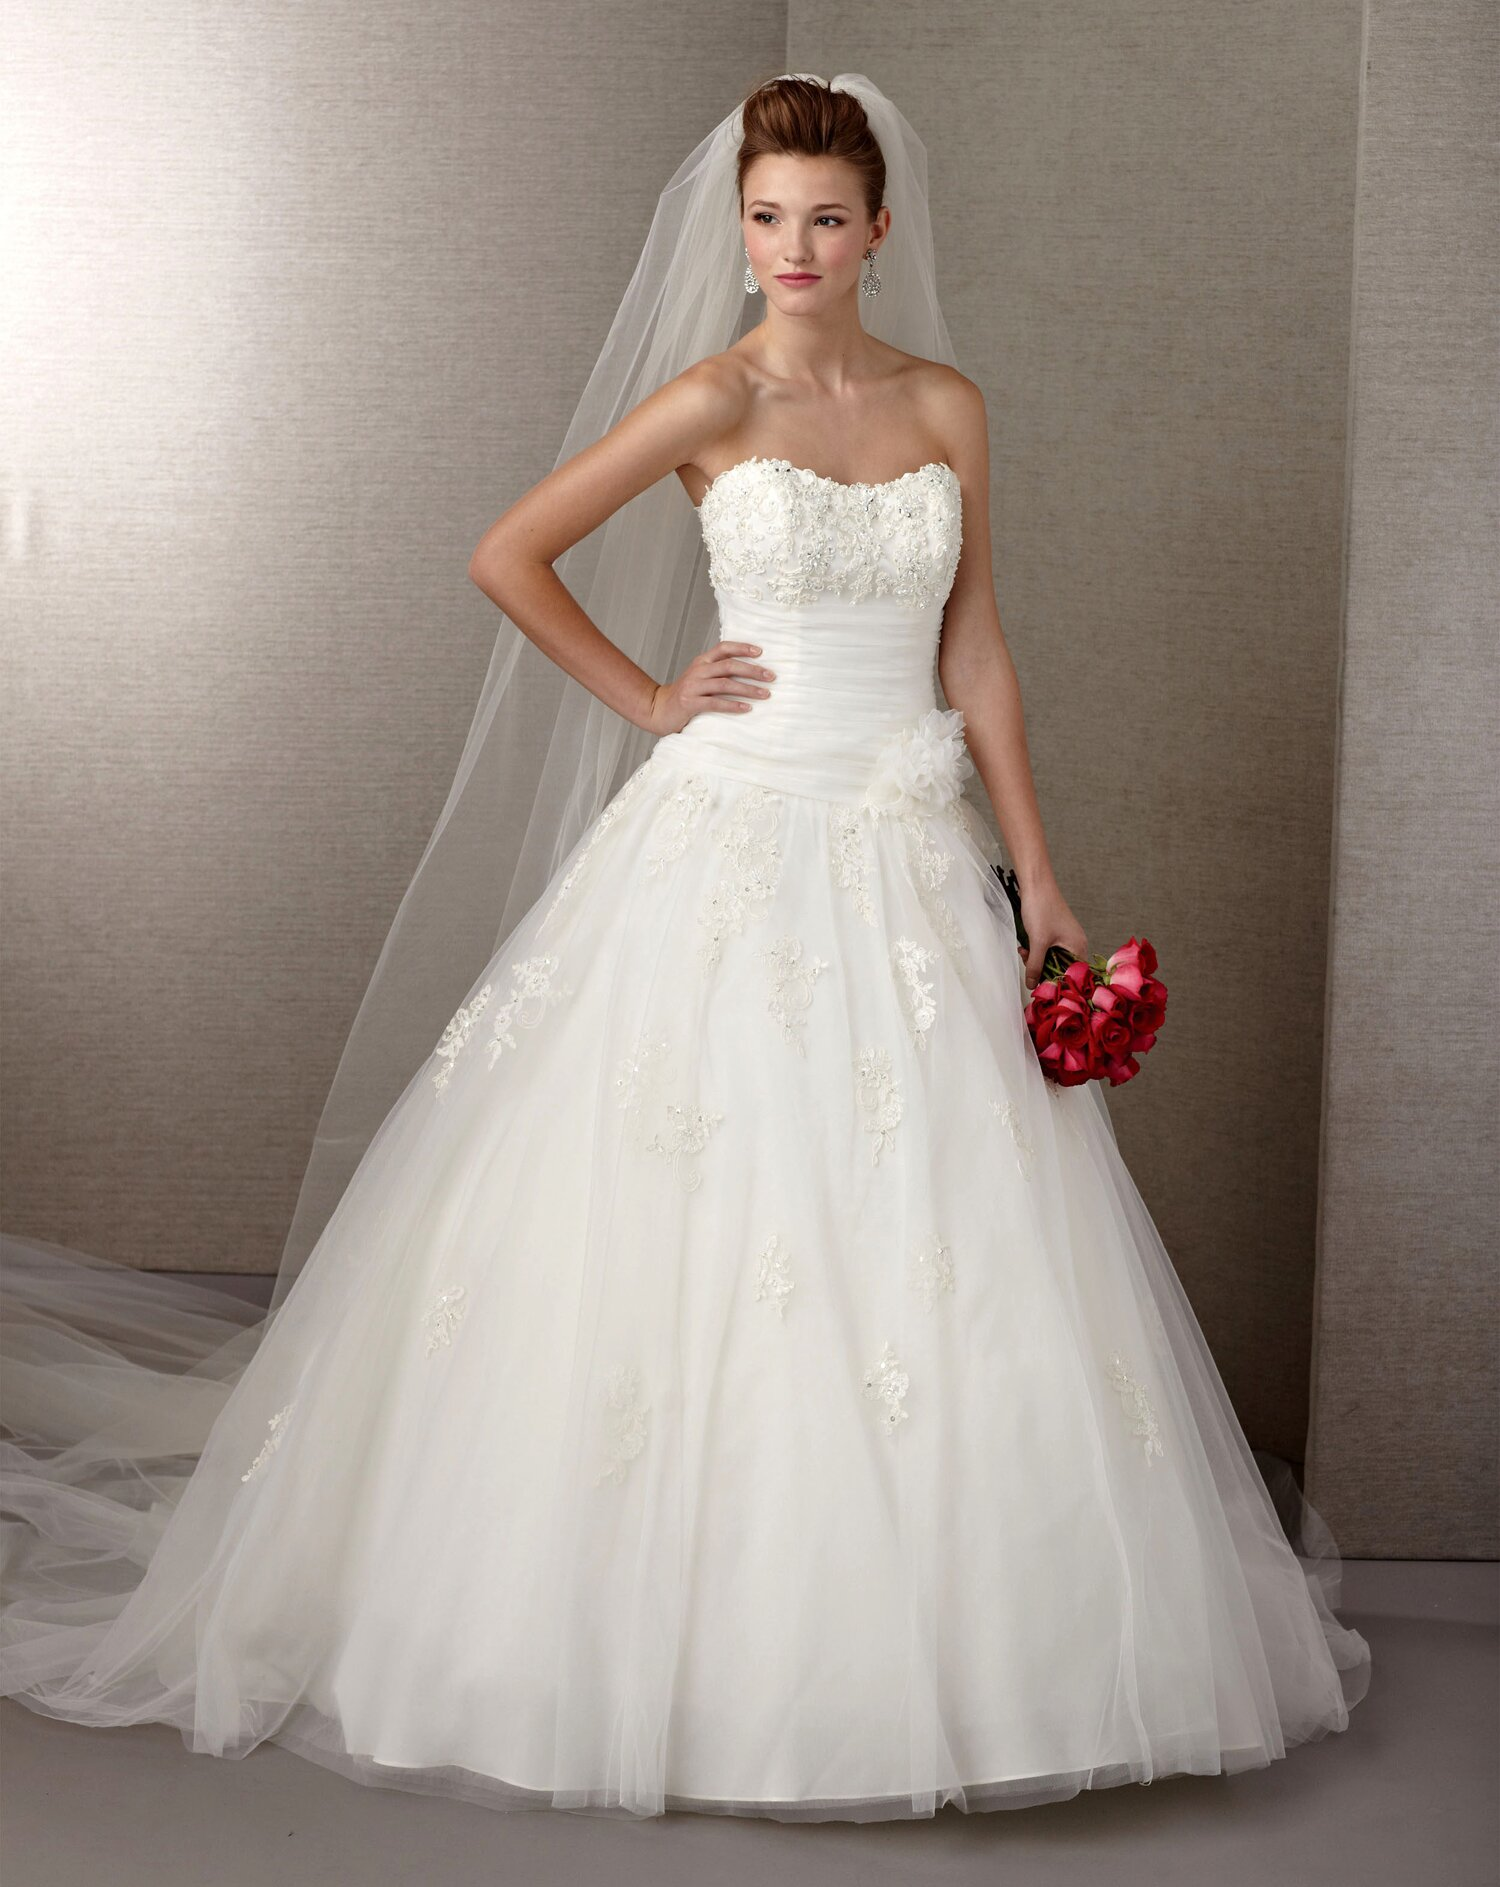 Vintage Wedding Dresses Atlanta